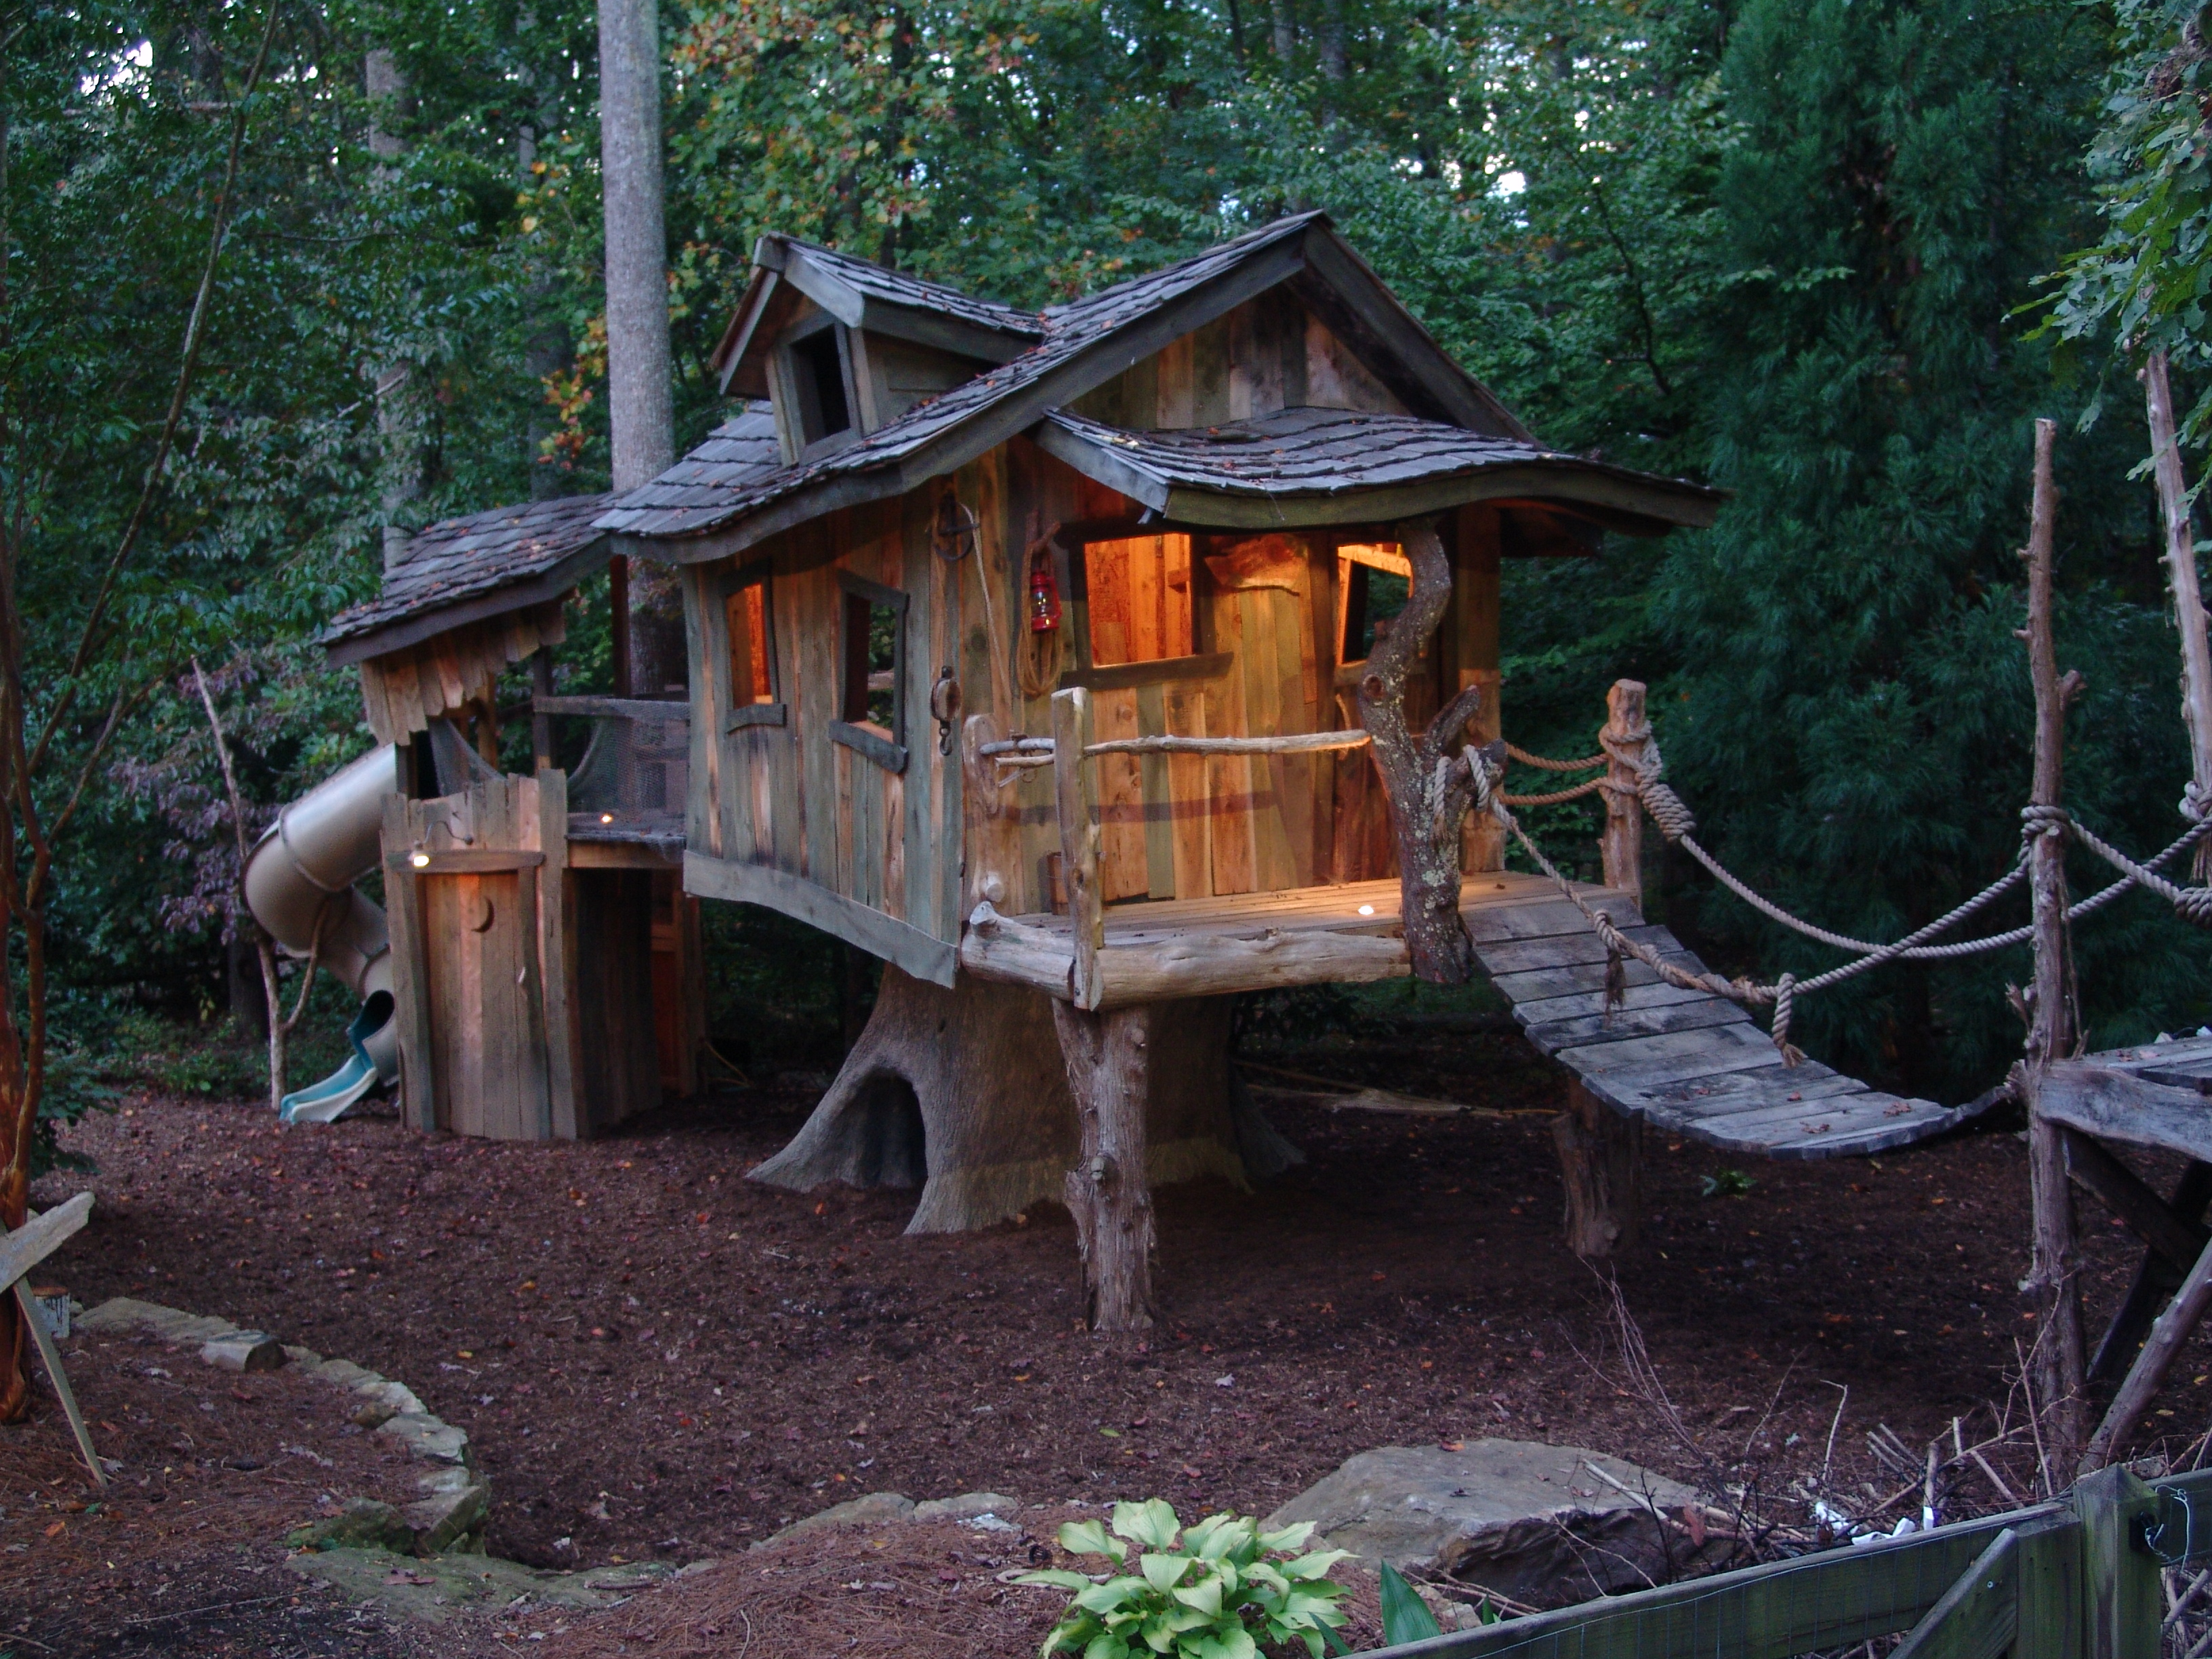 Creative Garden Spaces Inc, Oak Ridge NC, custom tree house construction, landscape lighting, tree house bridge